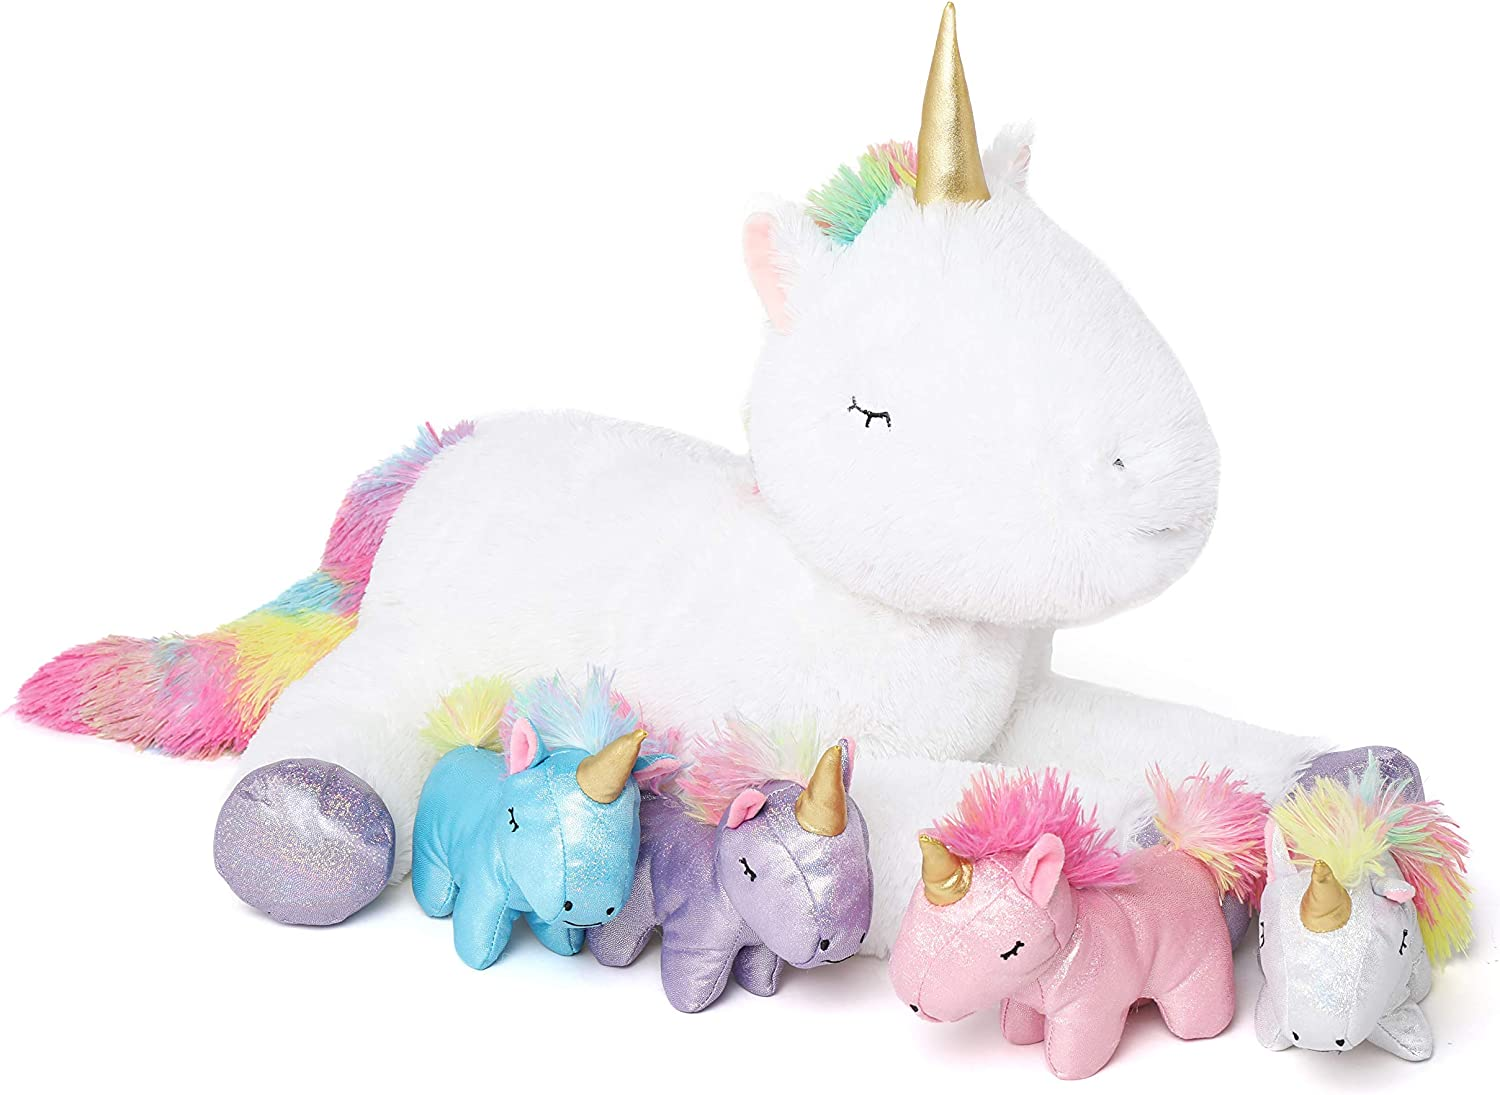 DOLDOA Stuffed Unicorn Animal Ranking TOP3 wi Girls Industry No. 1 Mommy for